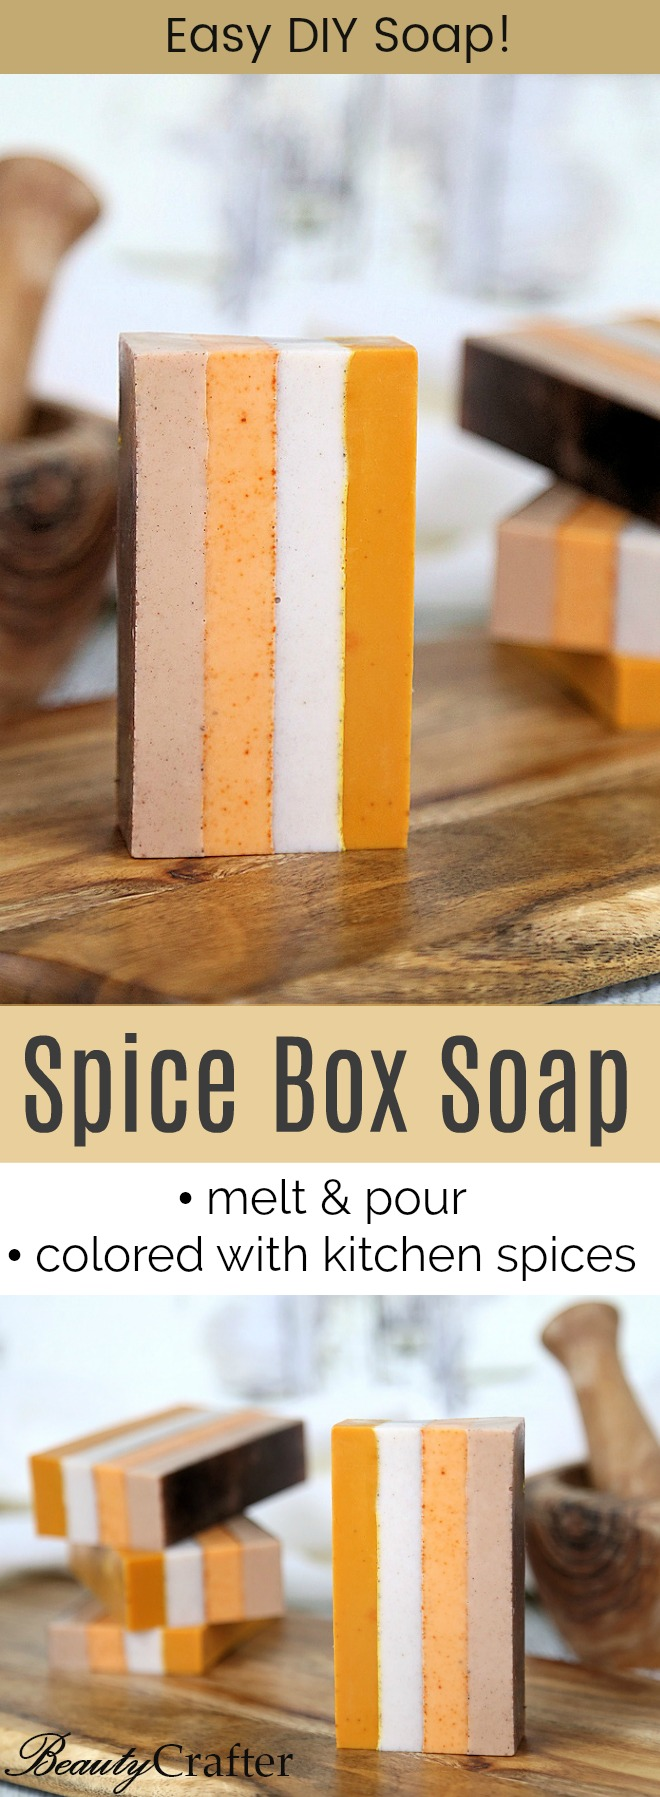 DIY Spice Soap Melt and Pour soap Striped with Natural colors from kitchen spices.